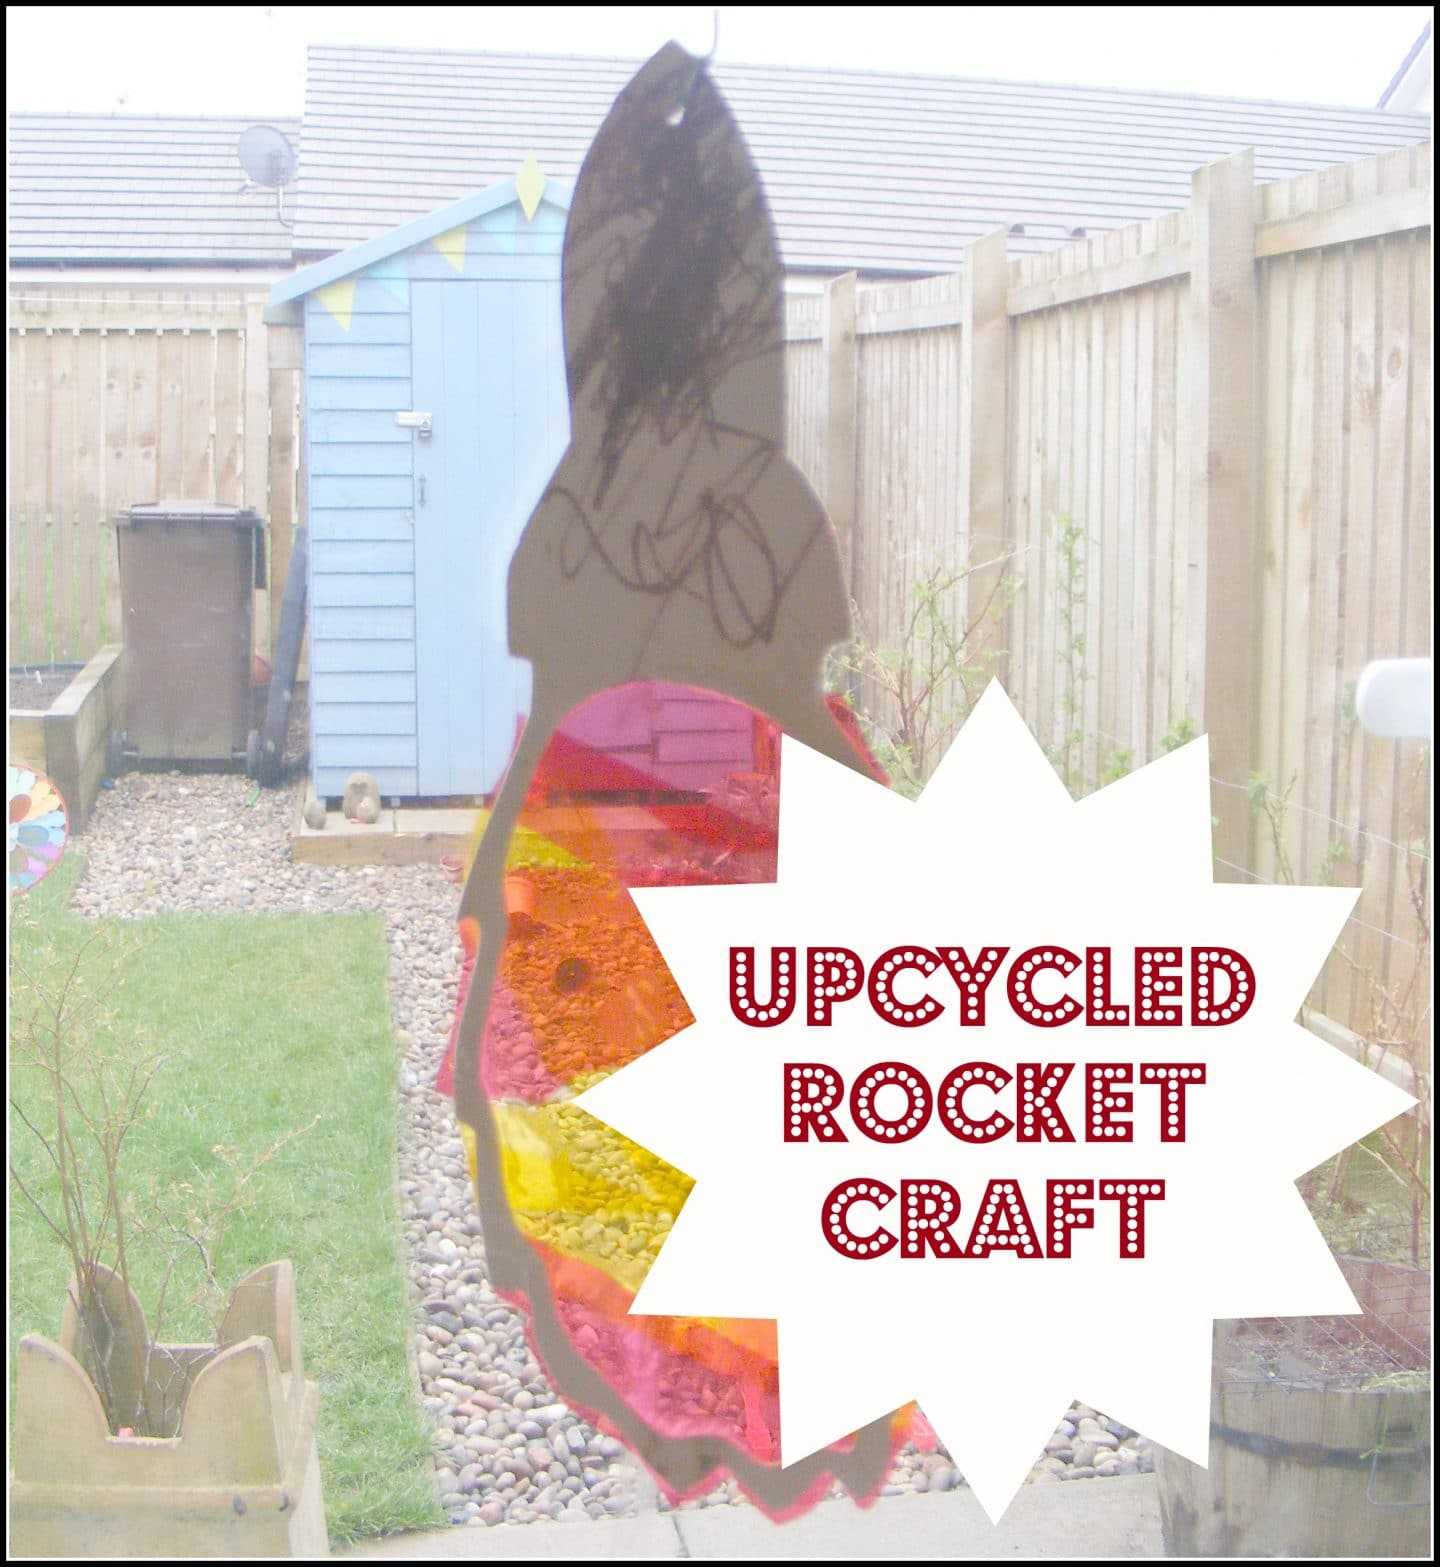 Upcycled Rocket Craft